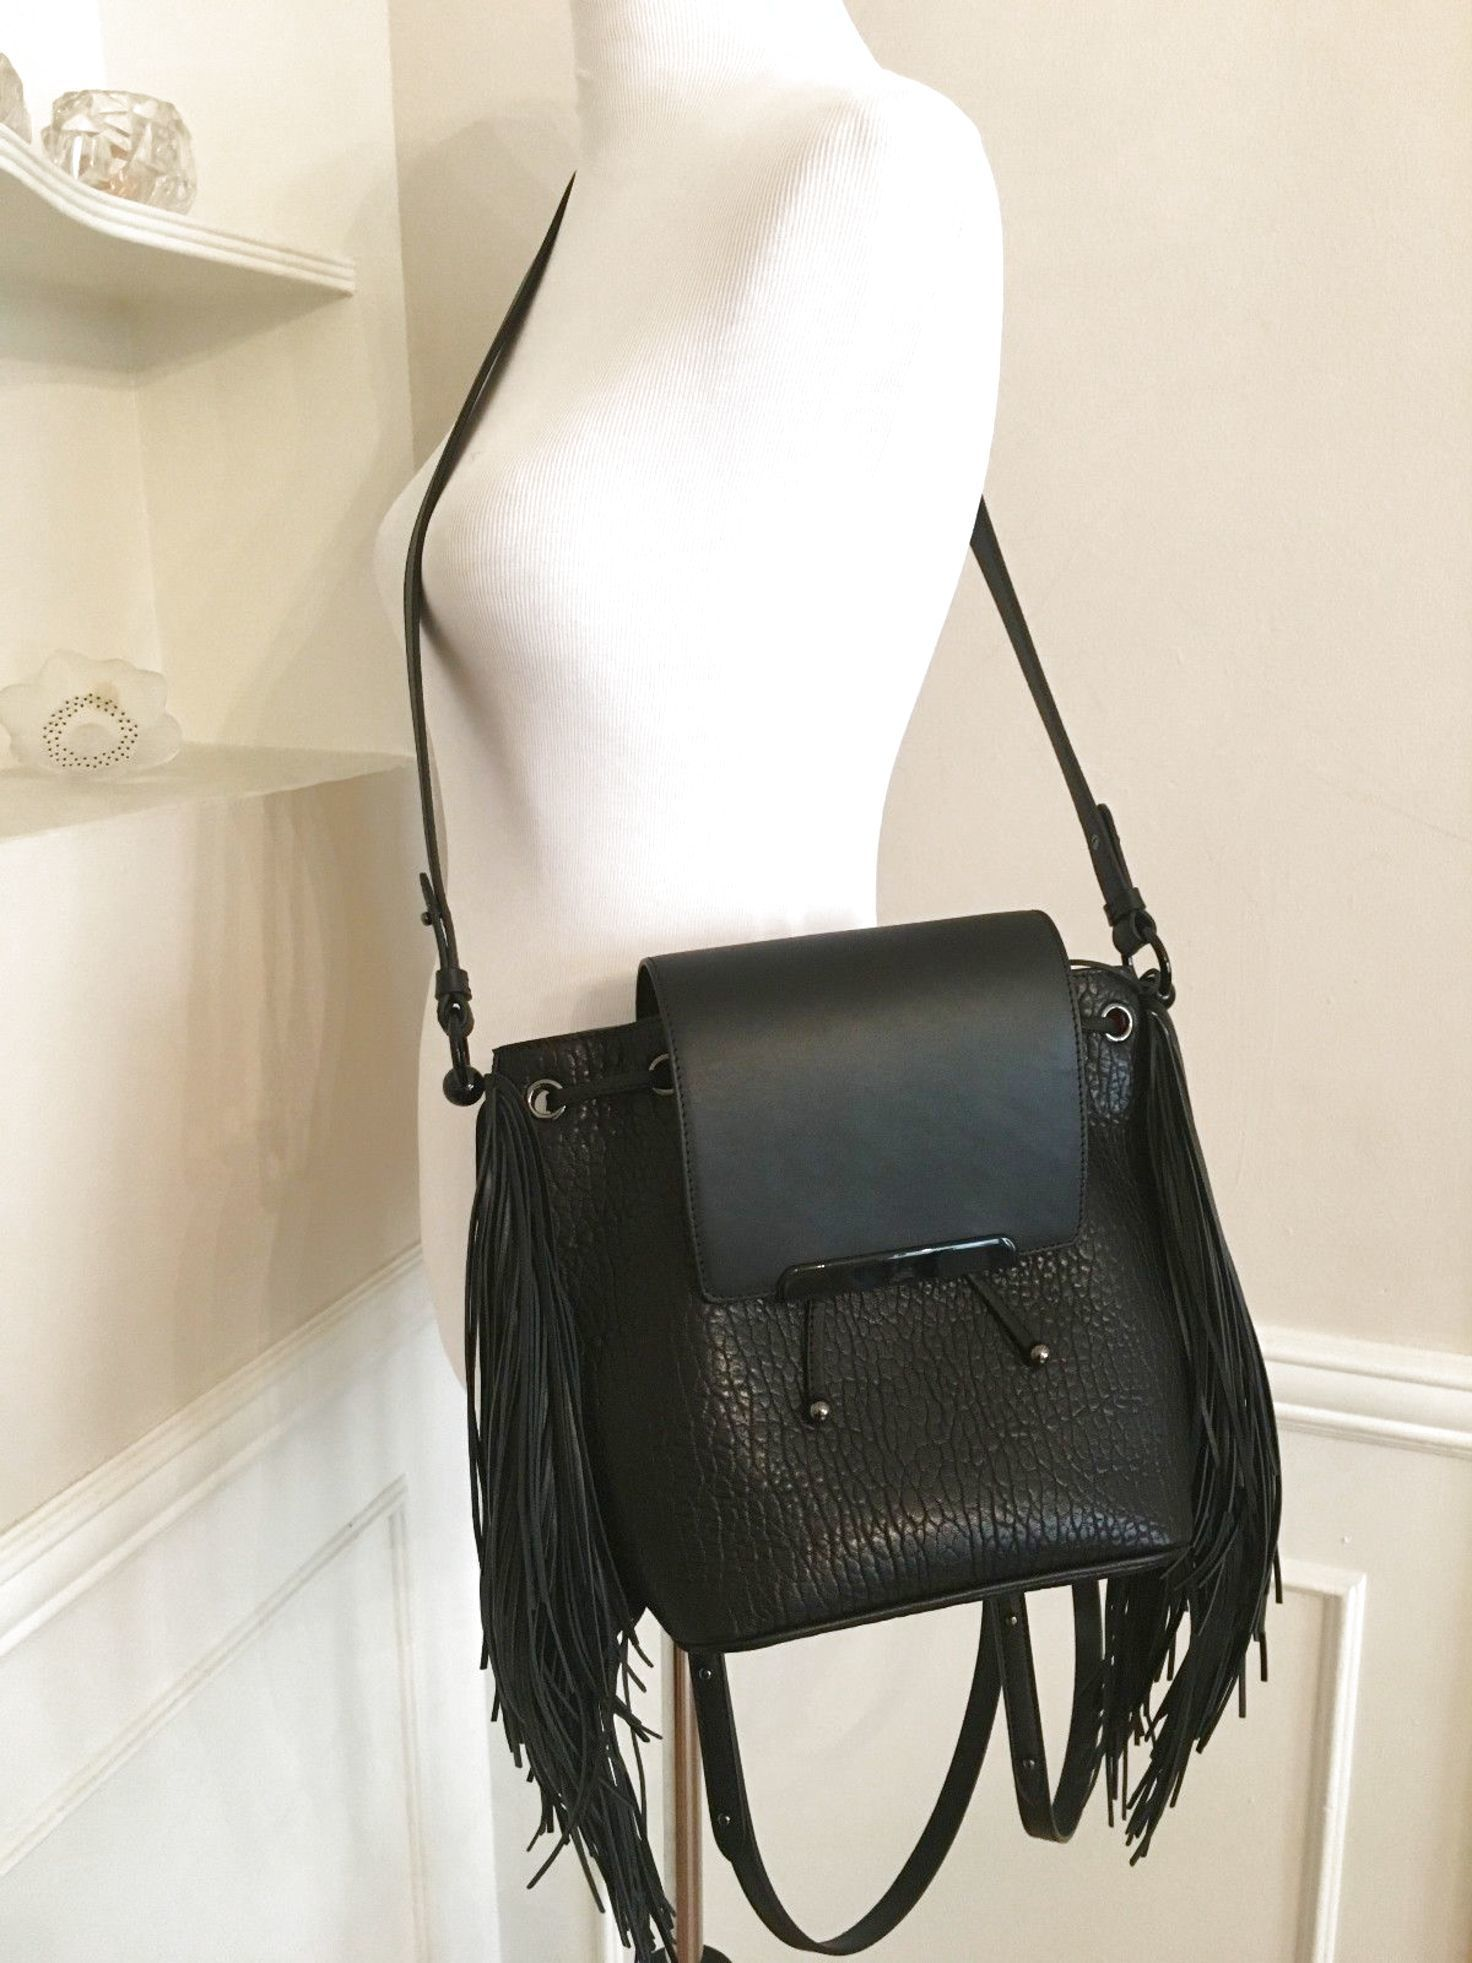 ad66ece6d39 Christian Louboutin Lucky L Fringed Pebbled Leather Hobo Bag Black ...